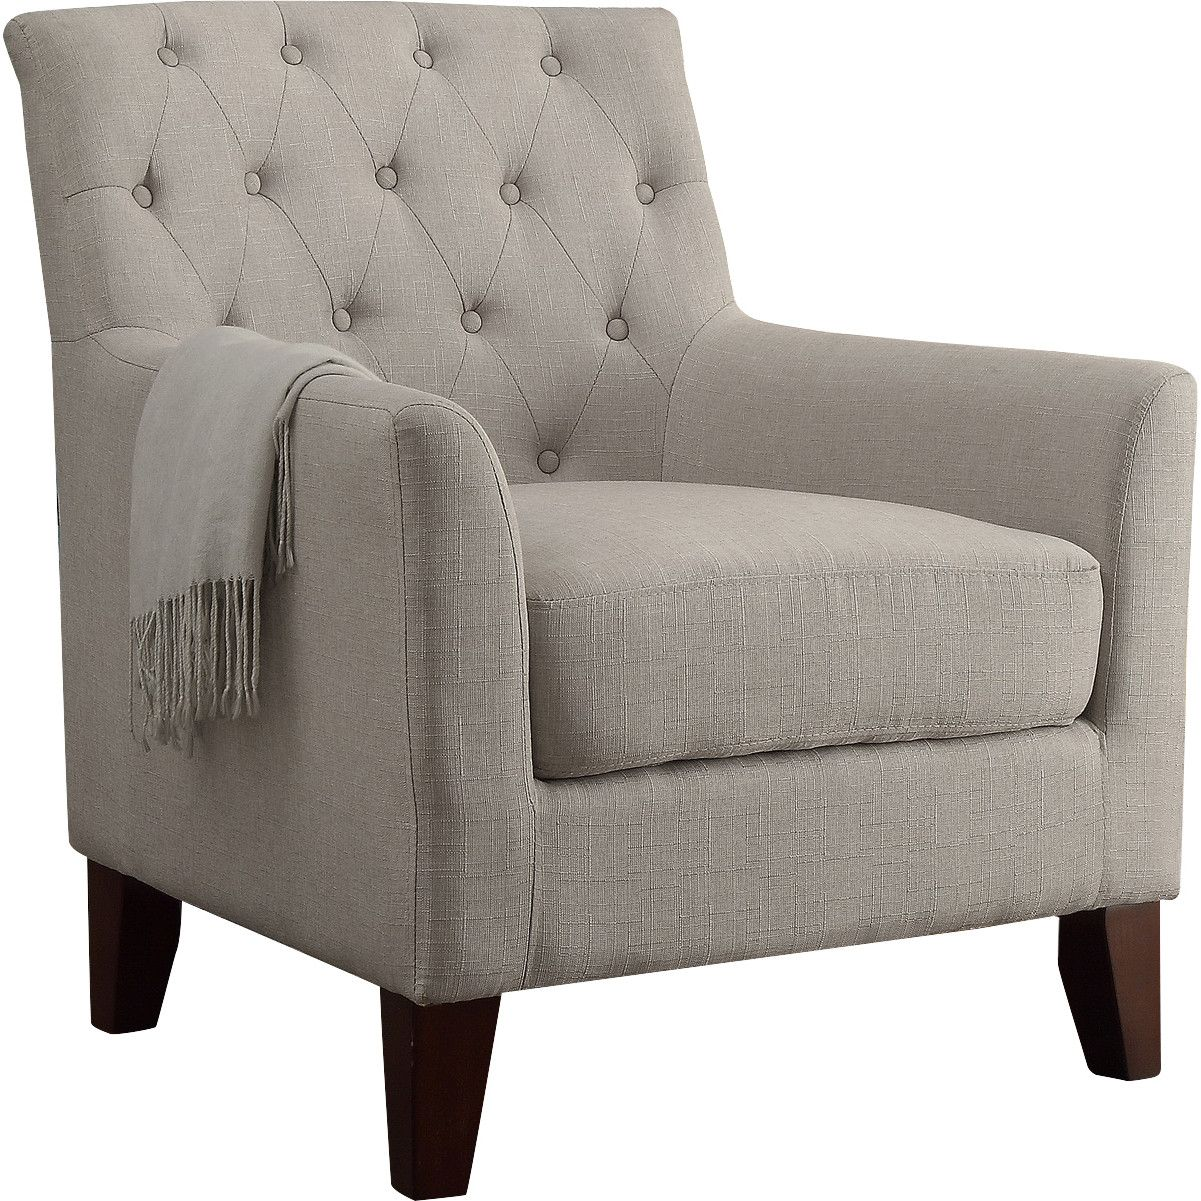 Varick Gallery Kilmersdon Tufted Armchair Youu0027ll Love | Wayfair